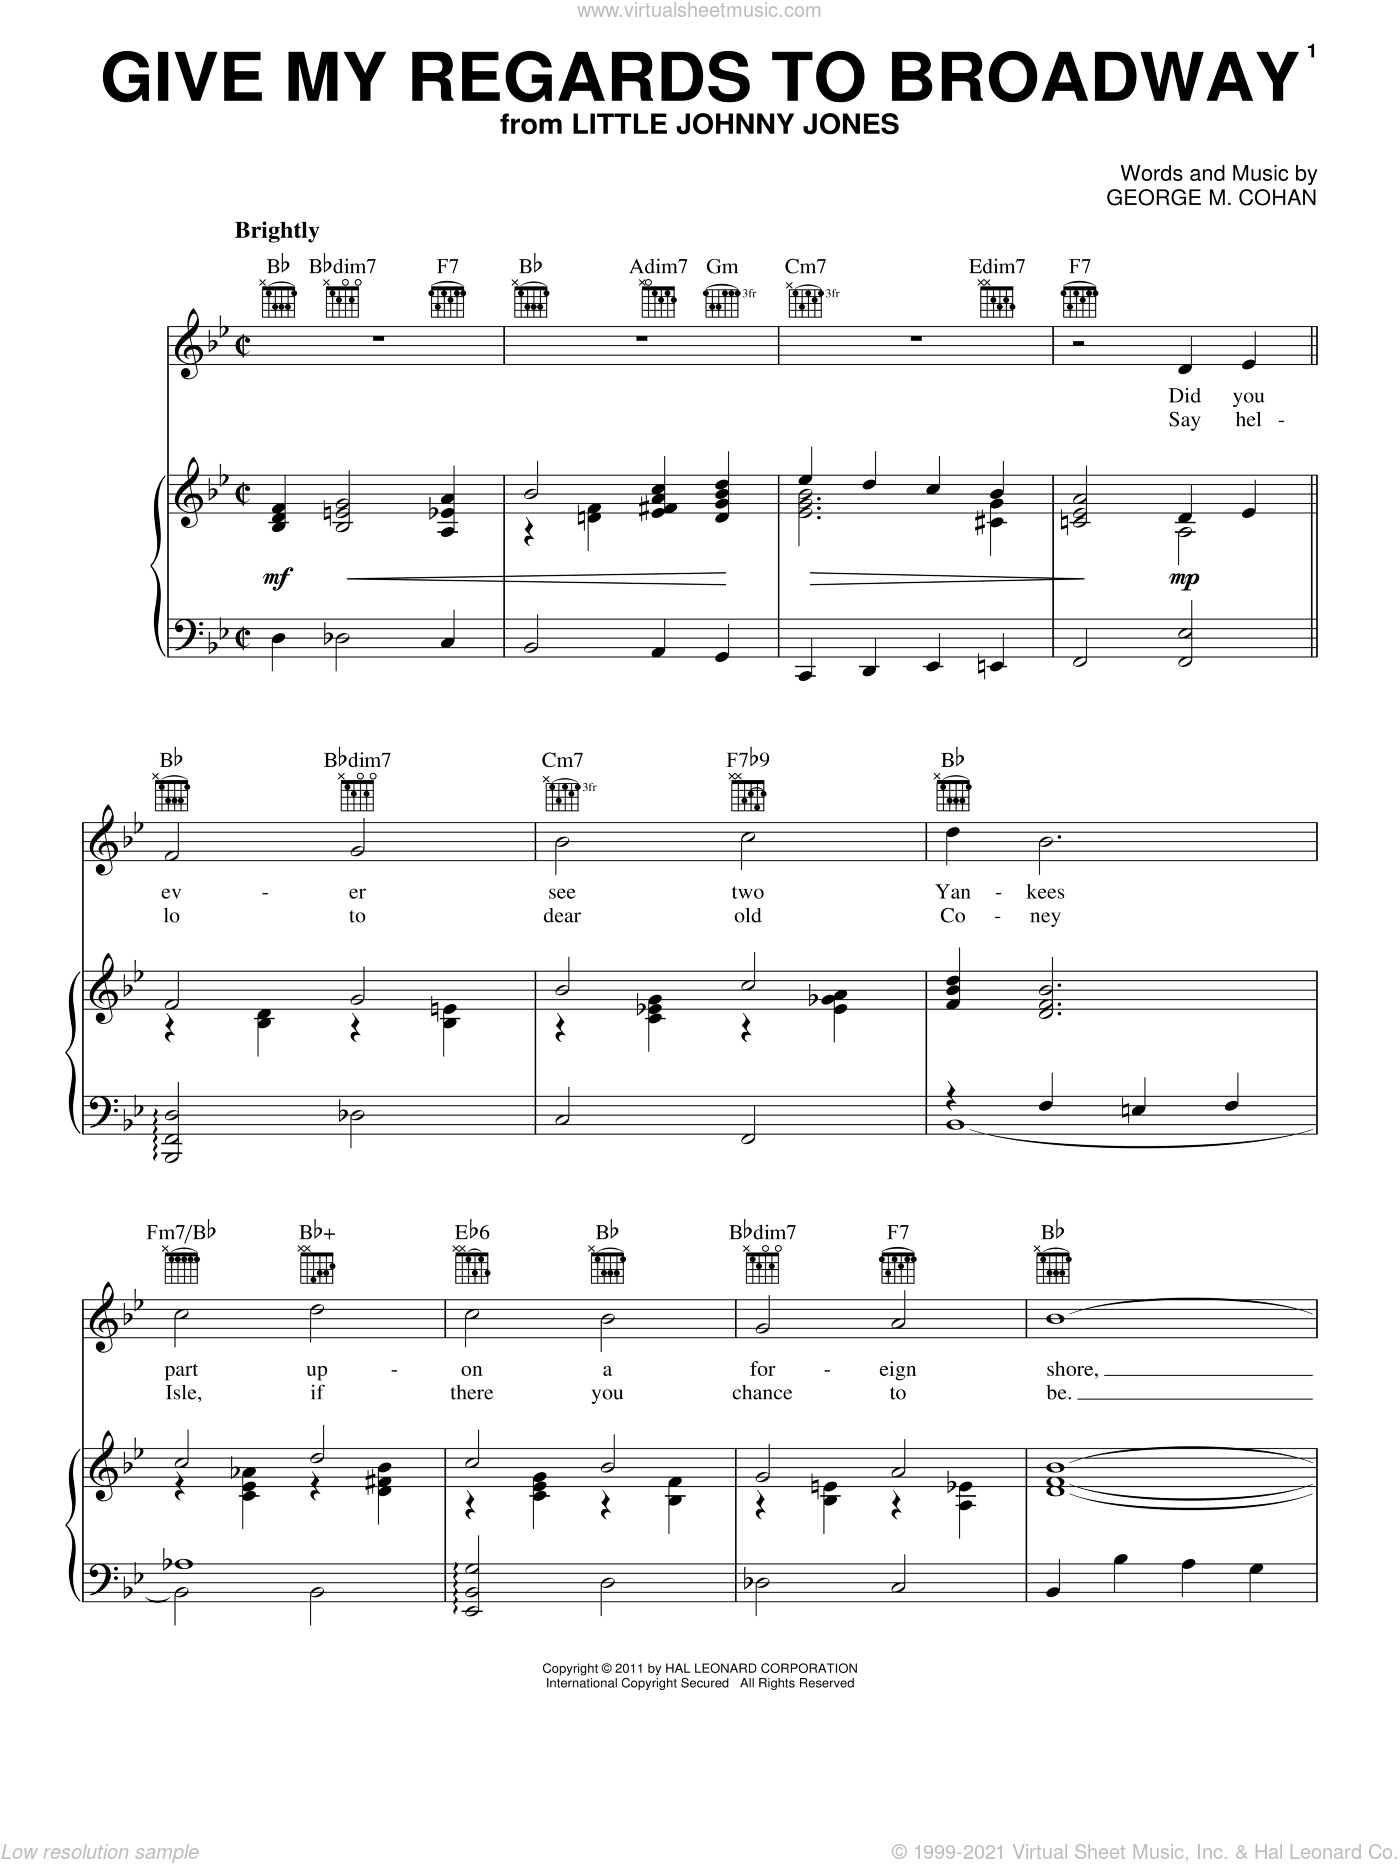 Give My Regards To Broadway sheet music for voice, piano or guitar by Showtune and George Cohan, intermediate skill level